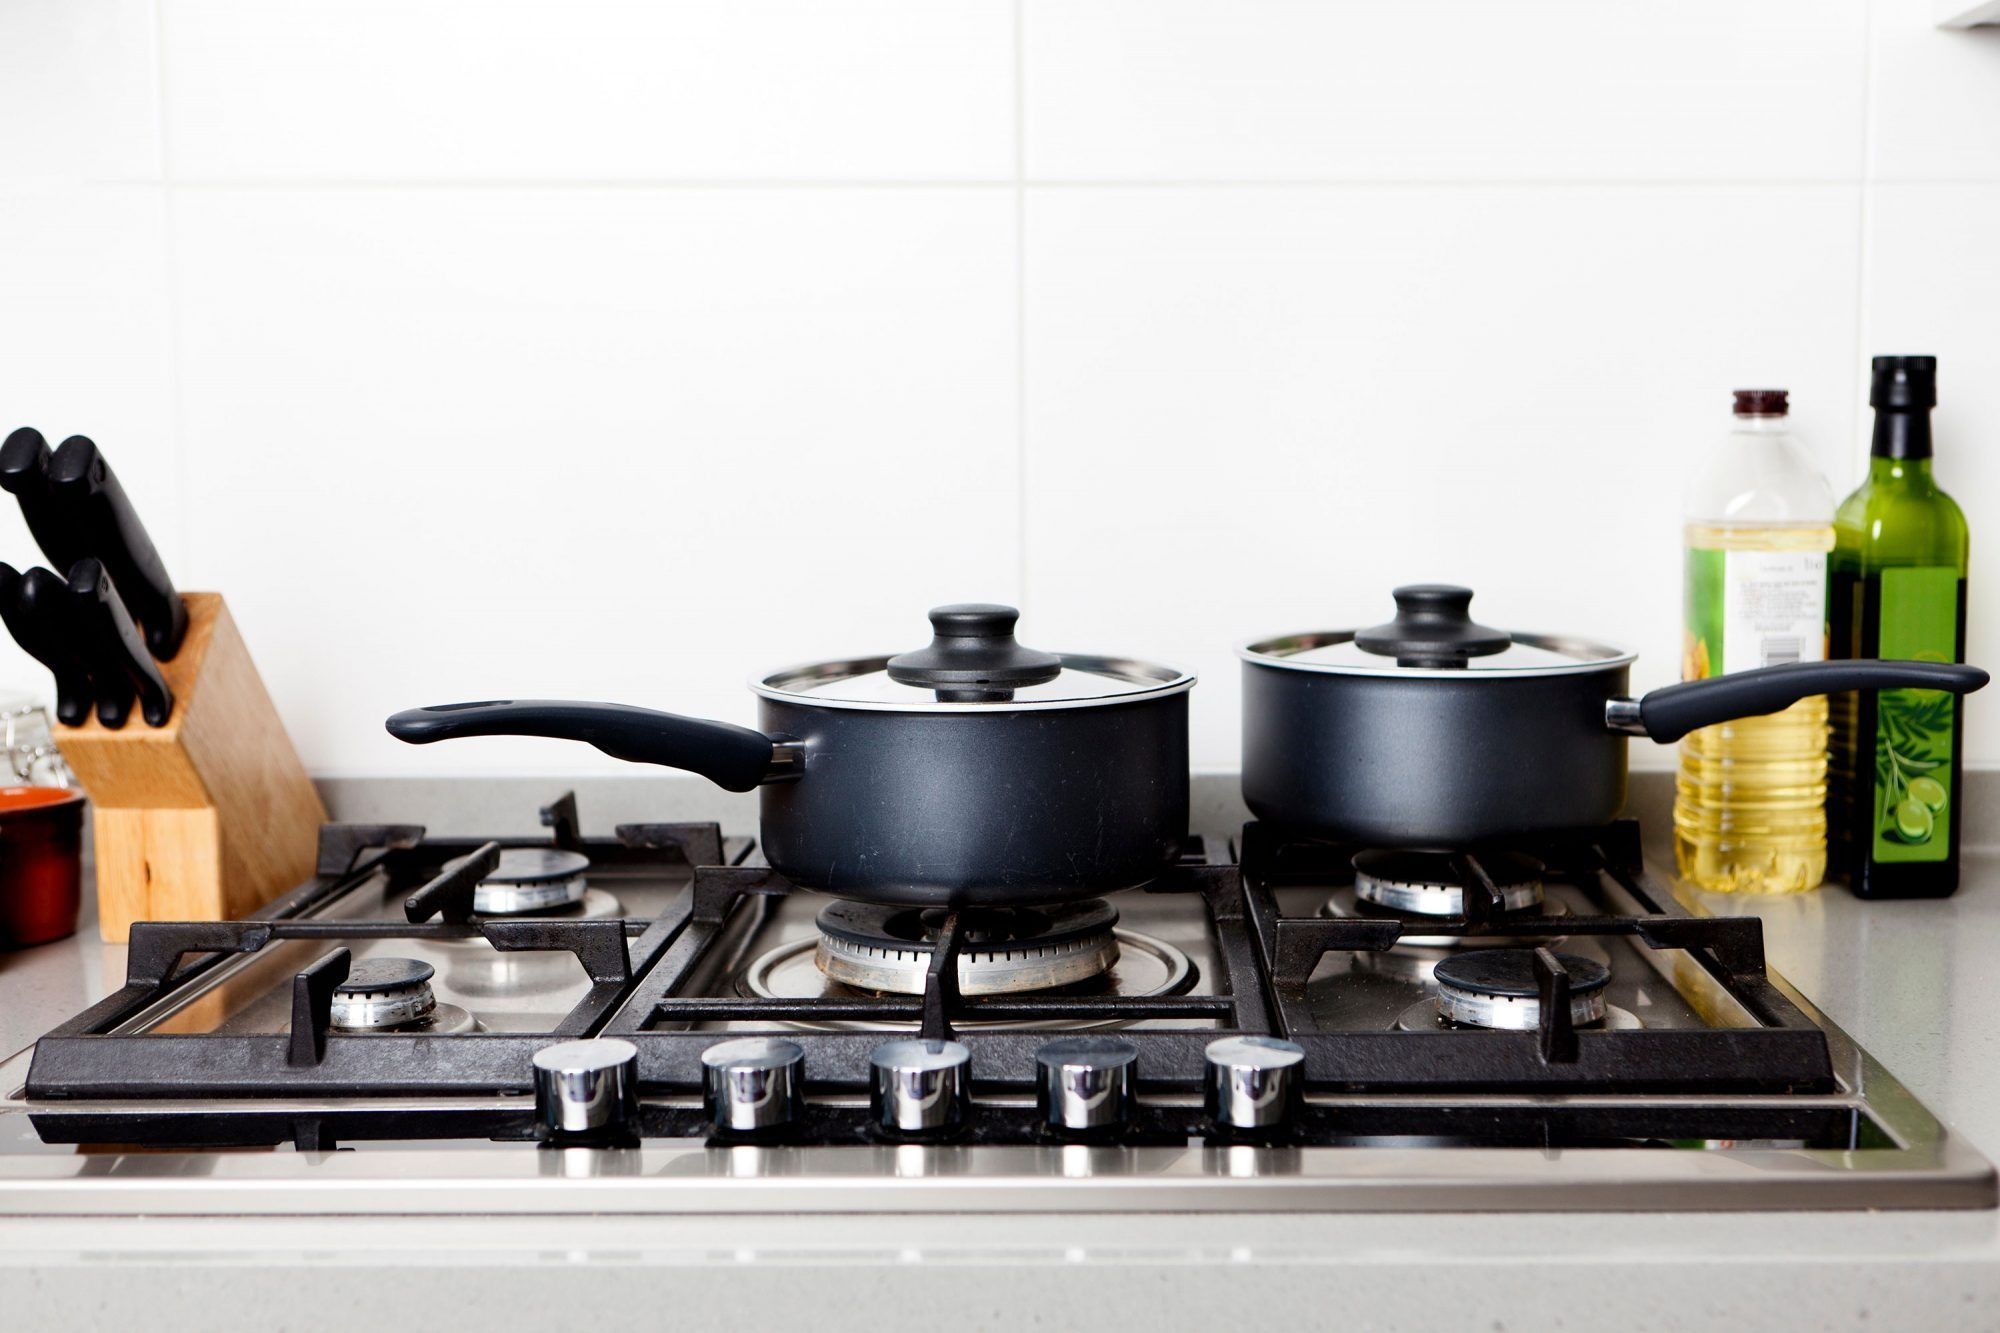 How to clean gas stove burners allrecipes gas stove